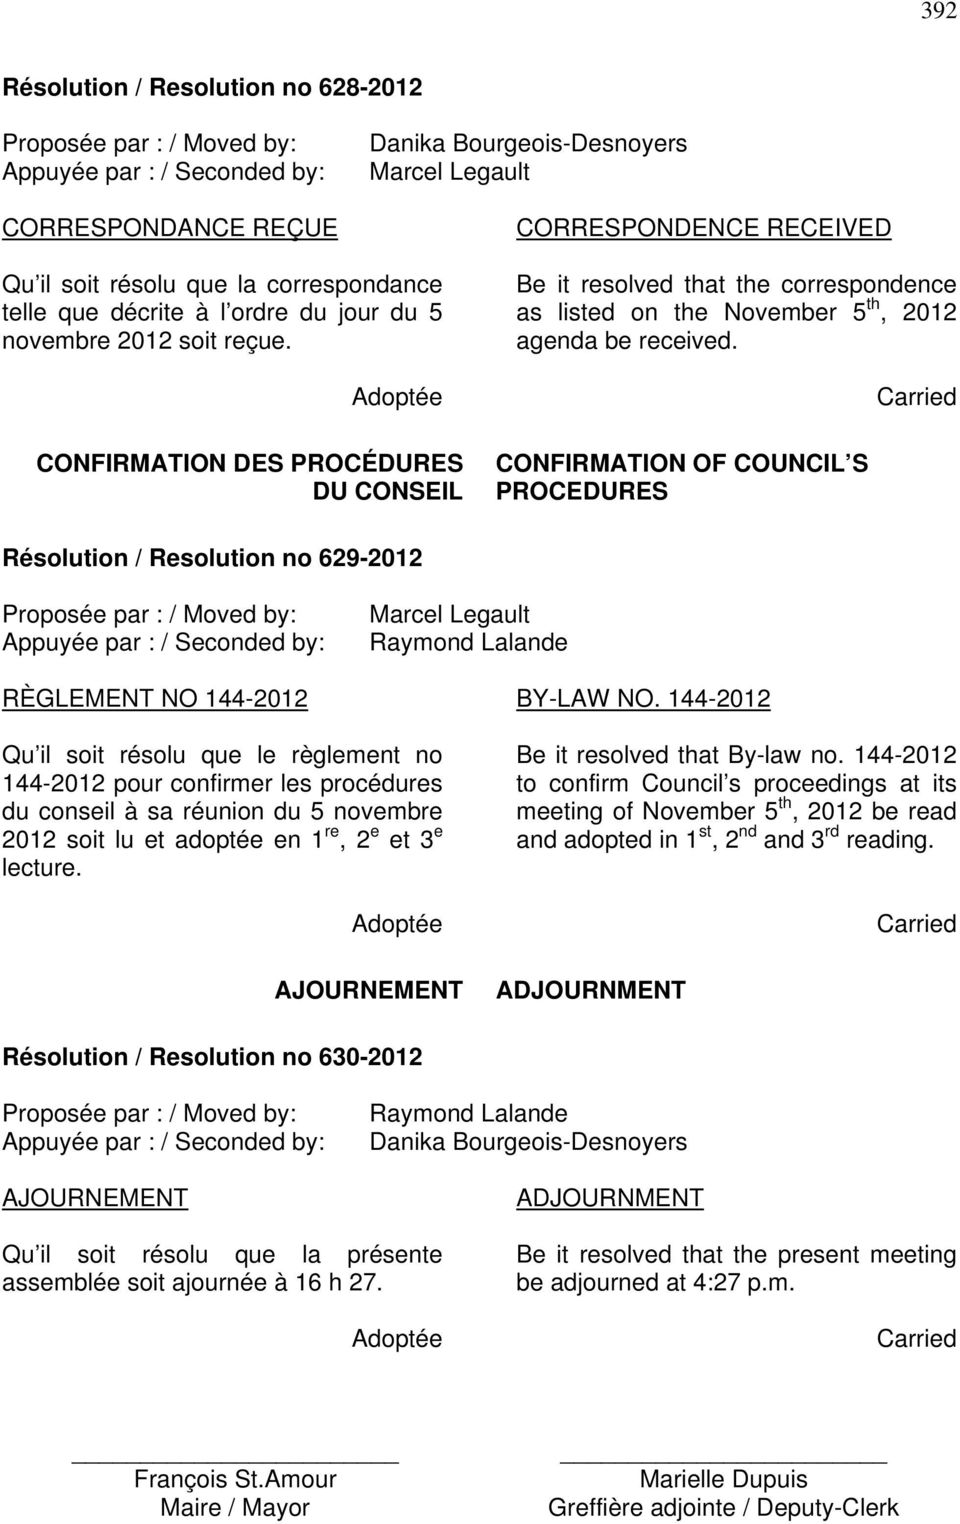 CONFIRMATION OF COUNCIL S PROCEDURES Résolution / Resolution no 629-2012 RÈGLEMENT NO 144-2012 BY-LAW NO.